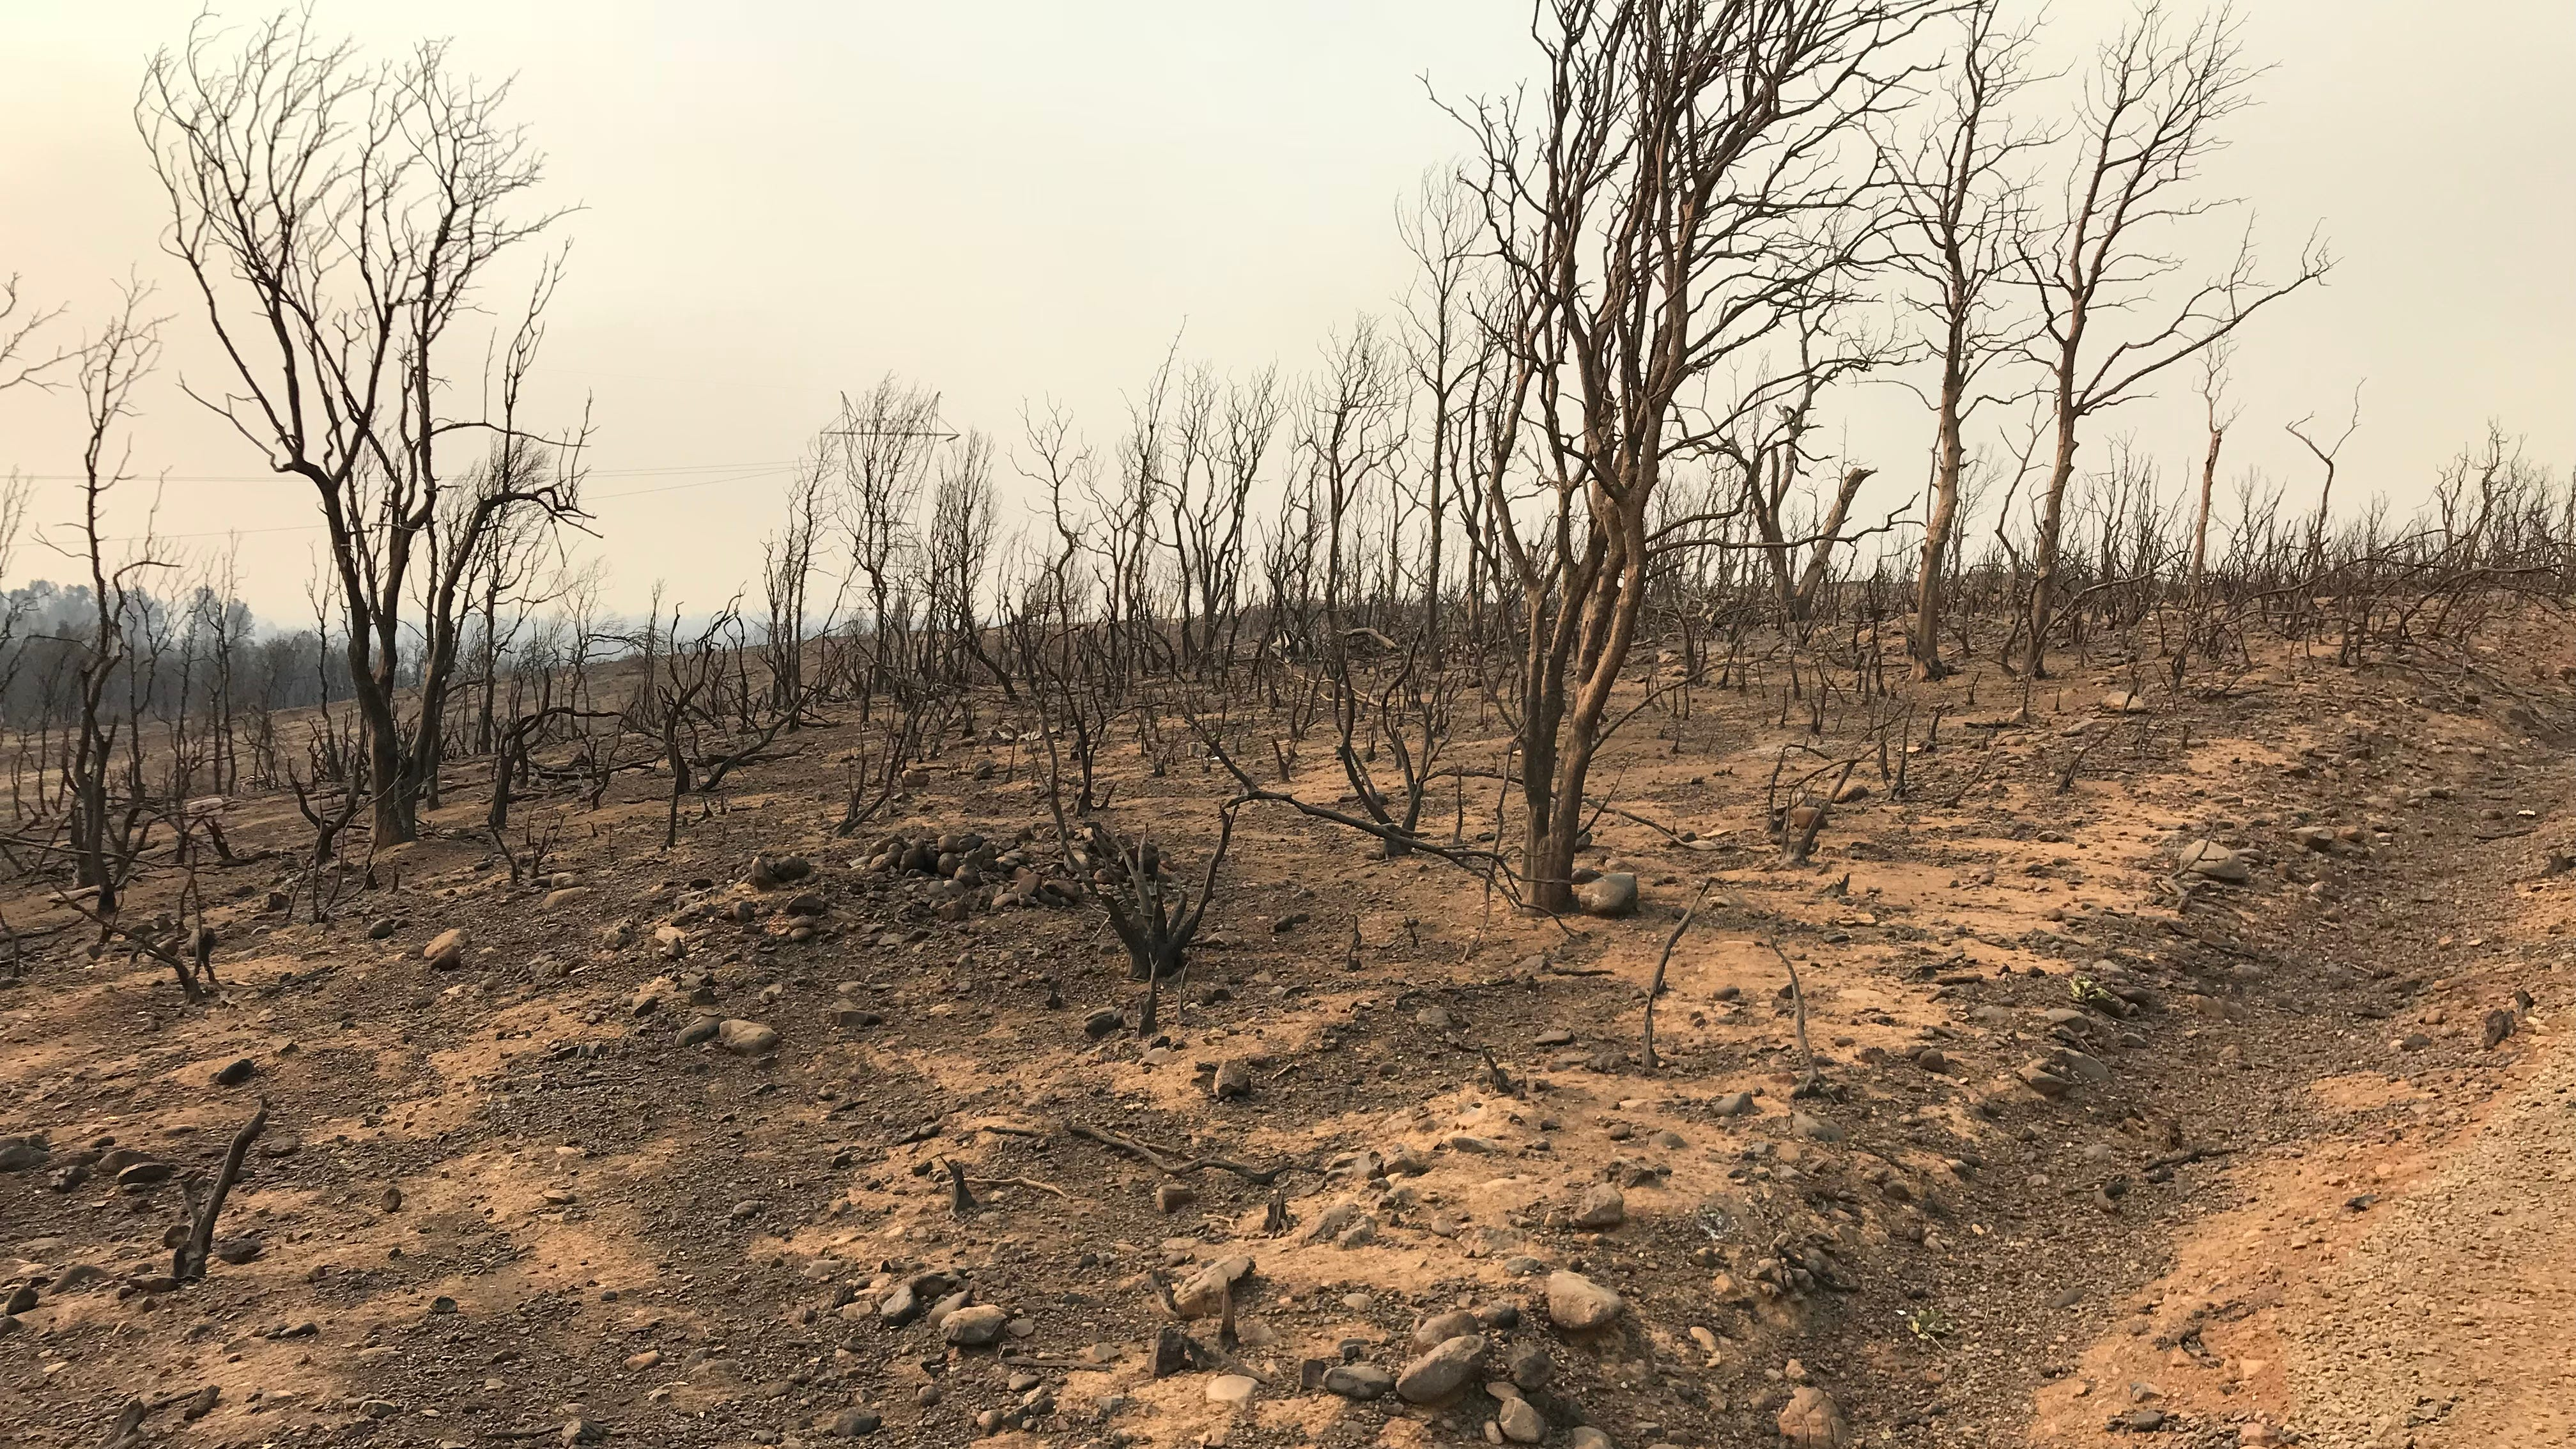 State officials 'racing' to prevent Carr Fire erosion before rains